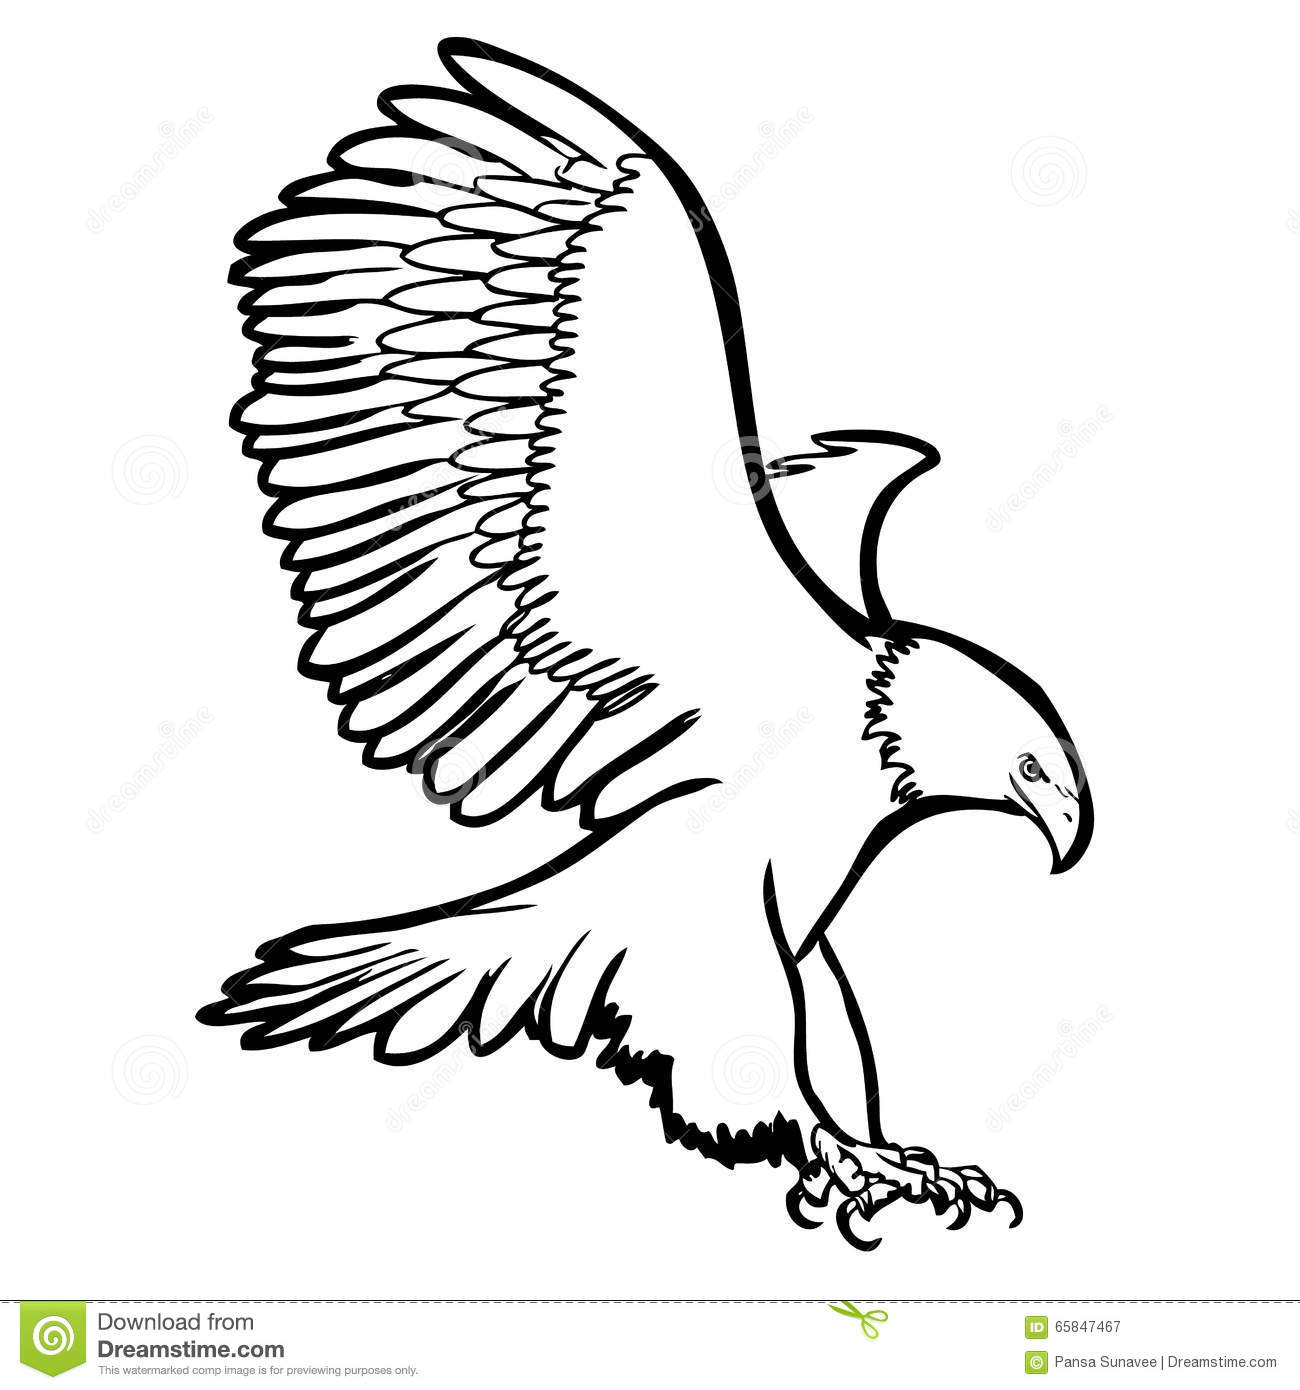 Freehand Sketch Illustration Of Eagle, Hawk Bird Stock